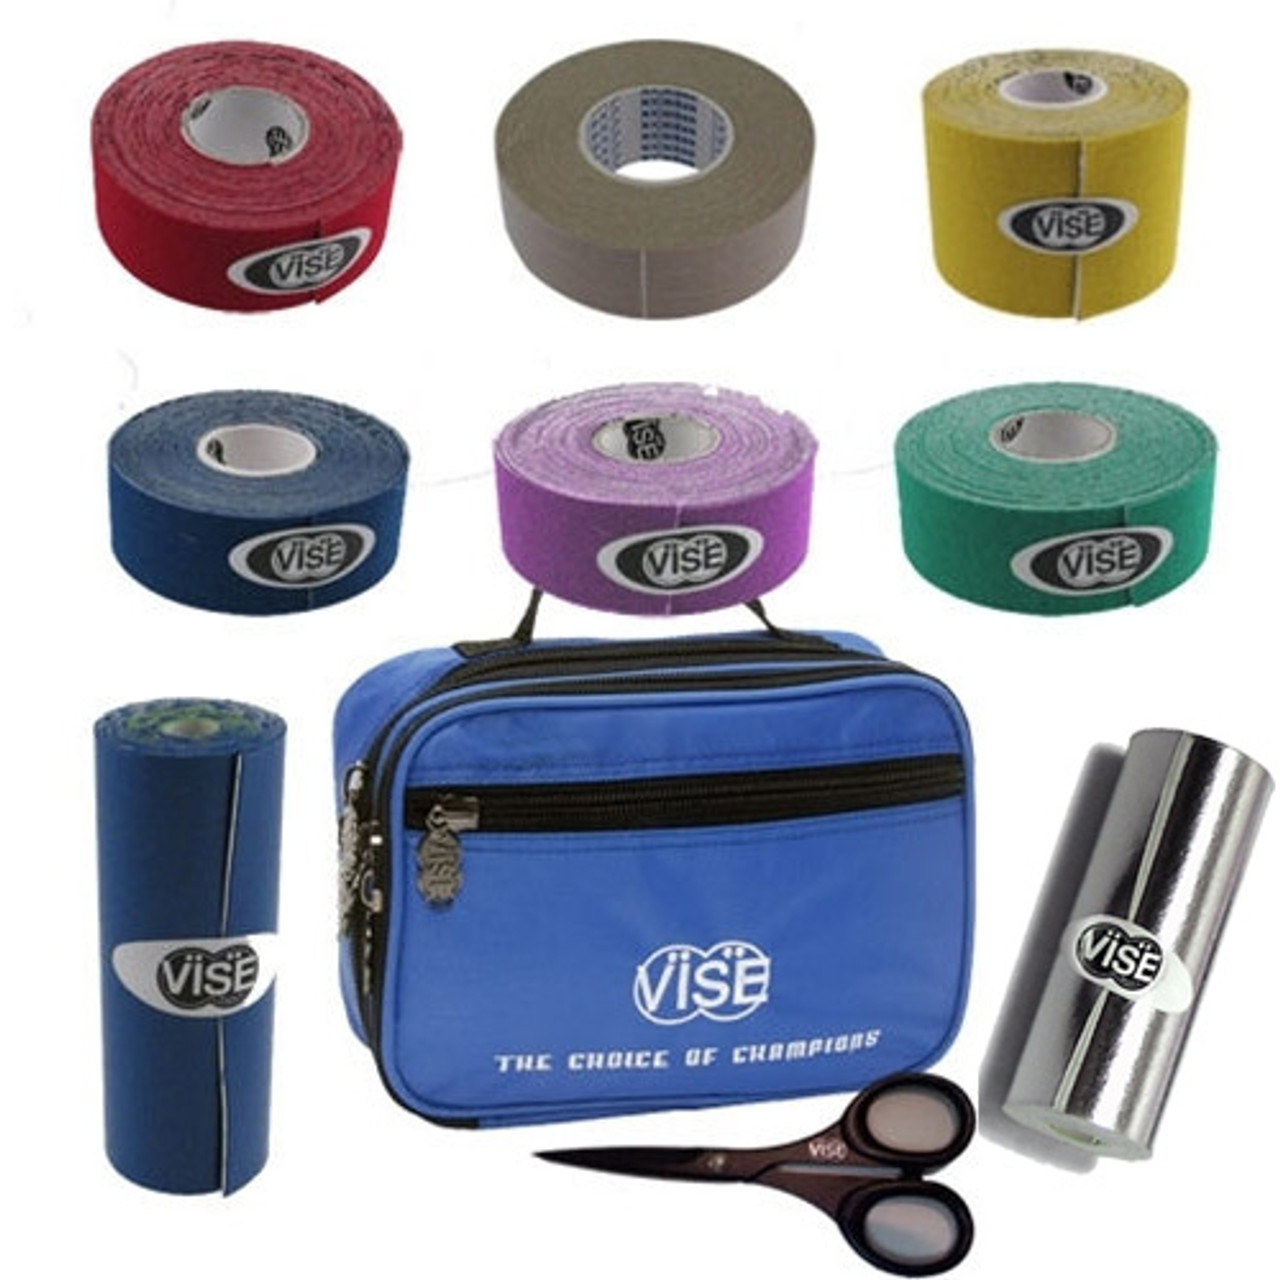 50a06ad72d59 Vise Tape Package with Accessory Bag